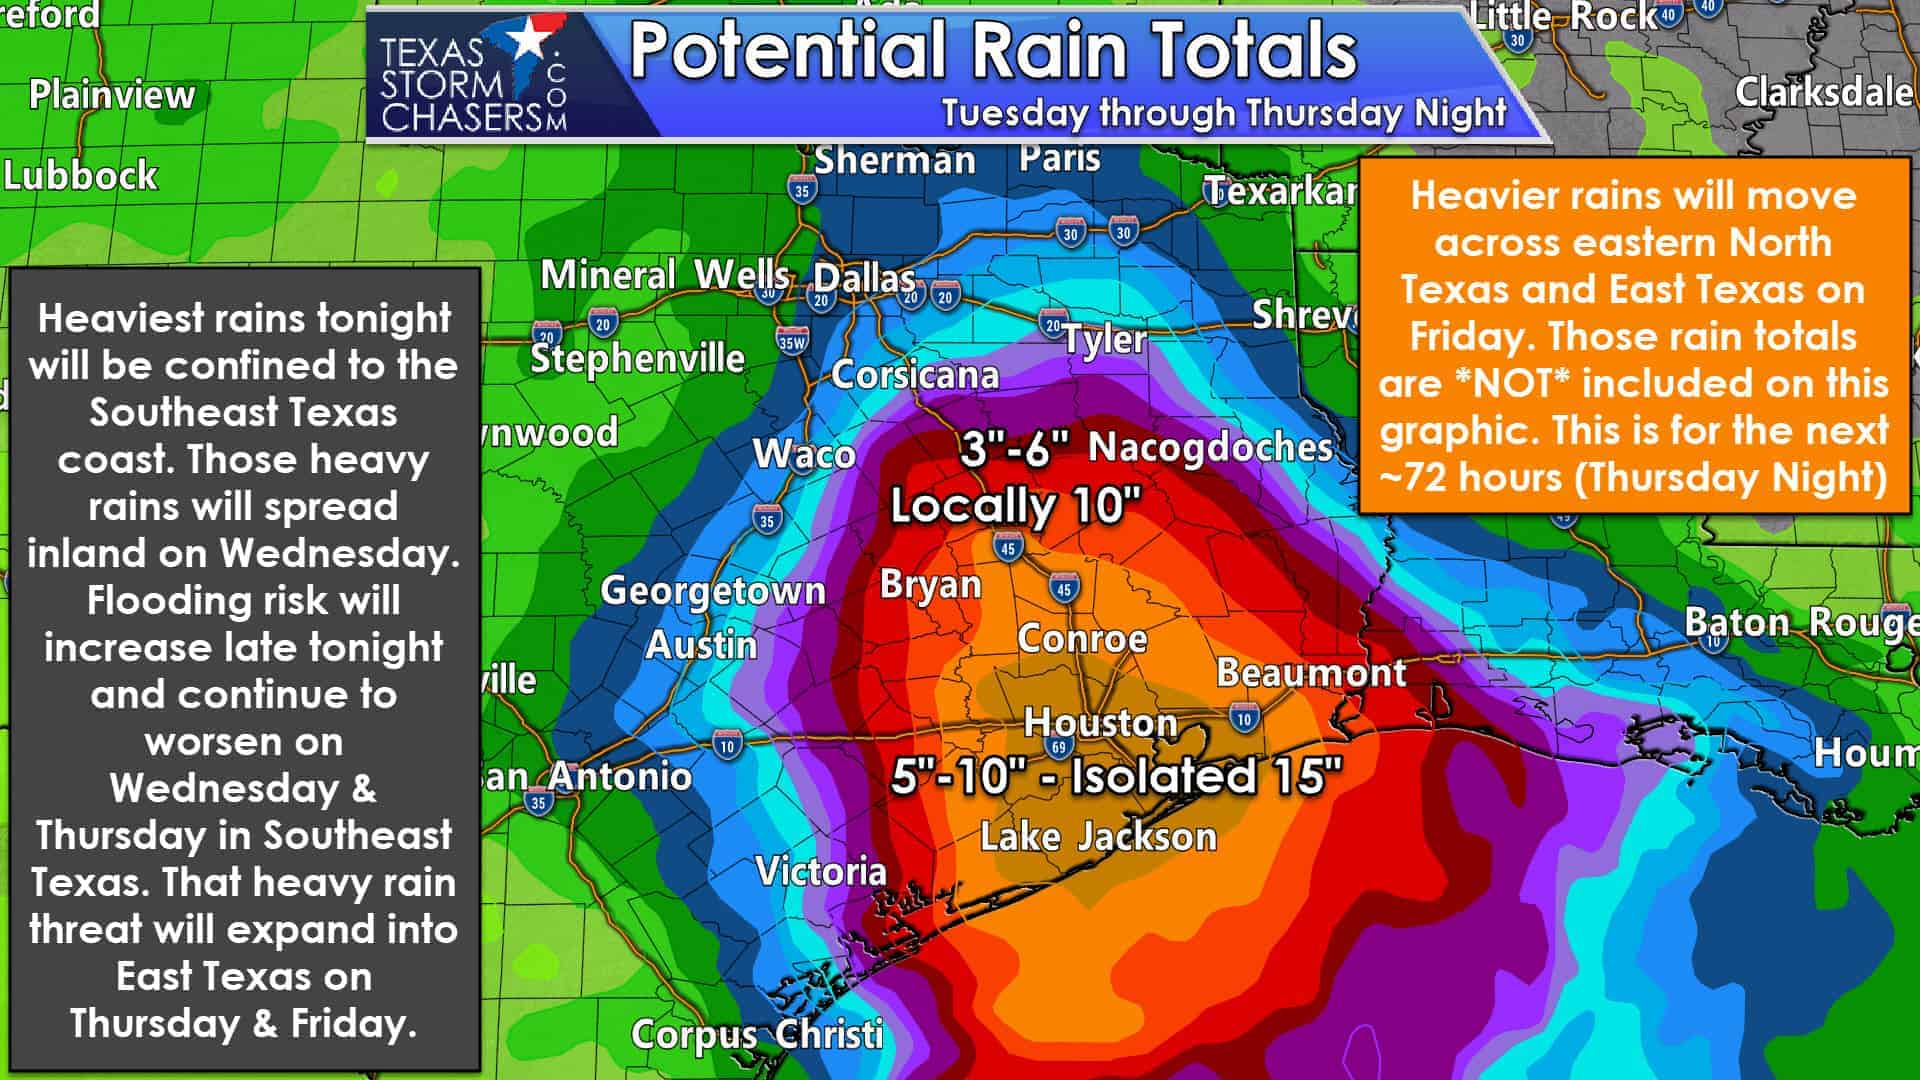 Flooding forecast to begin tonight in parts of Southeast ... on katy texas weather map, nashville tennessee weather map, schlitterbahn corpus christi map, edinburg texas weather map, denton texas weather map, midland texas weather map, corpus christi city map, austin texas weather map, columbus ohio weather map, houston texas weather map, orlando florida weather map, corpus christi on a map, dallas texas weather map, corpus christi tx map, orange texas weather map, baton rouge louisiana weather map, lubbock texas weather map, corpus christi road map, cleveland ohio weather map, corpus christi zip code map,